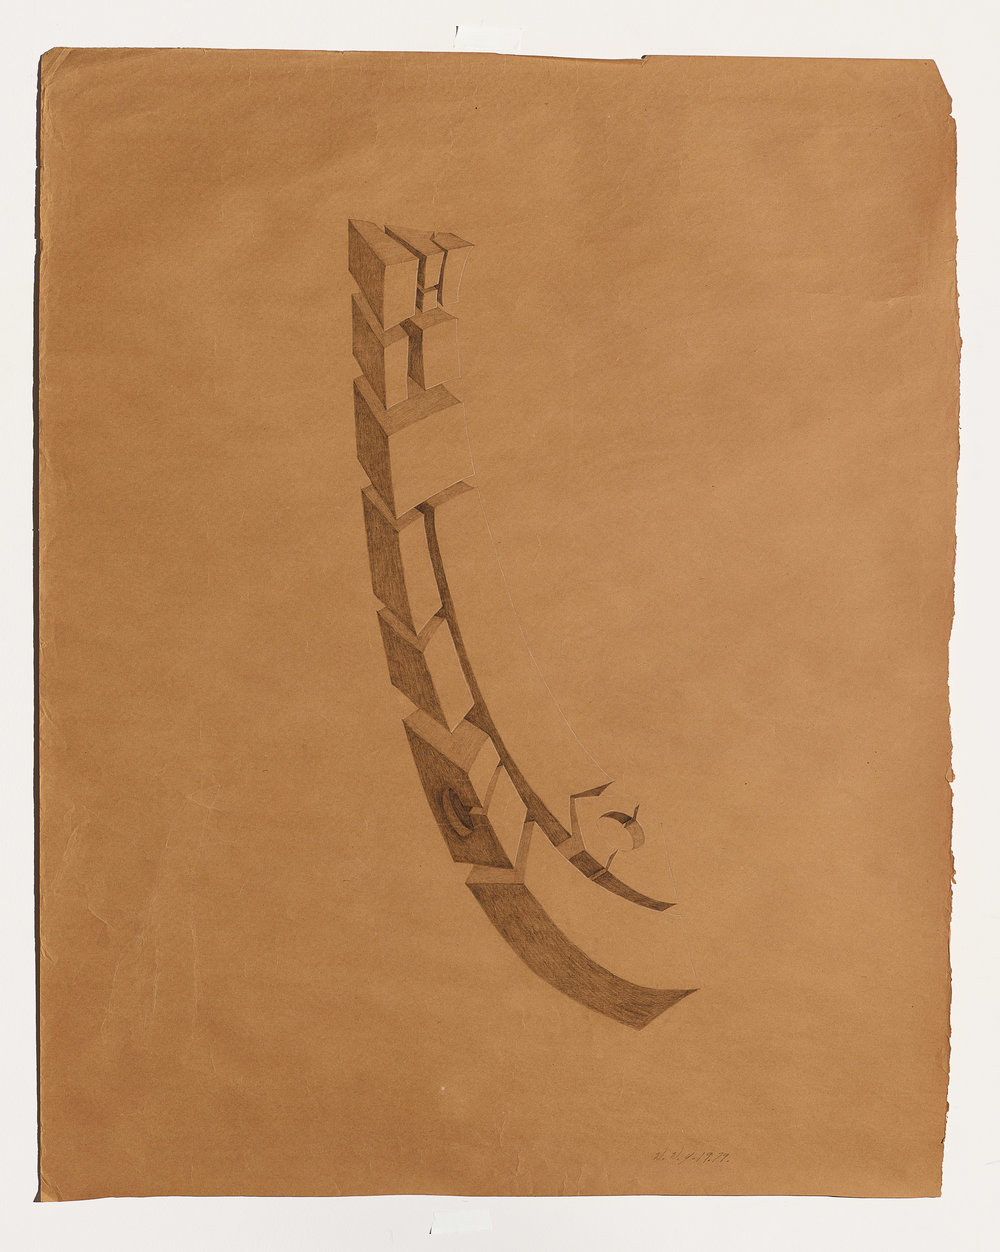 Willie Young, Untitled, 1979. Graphite on Paper, 40 x 50 in. Price on Request Reference 0664